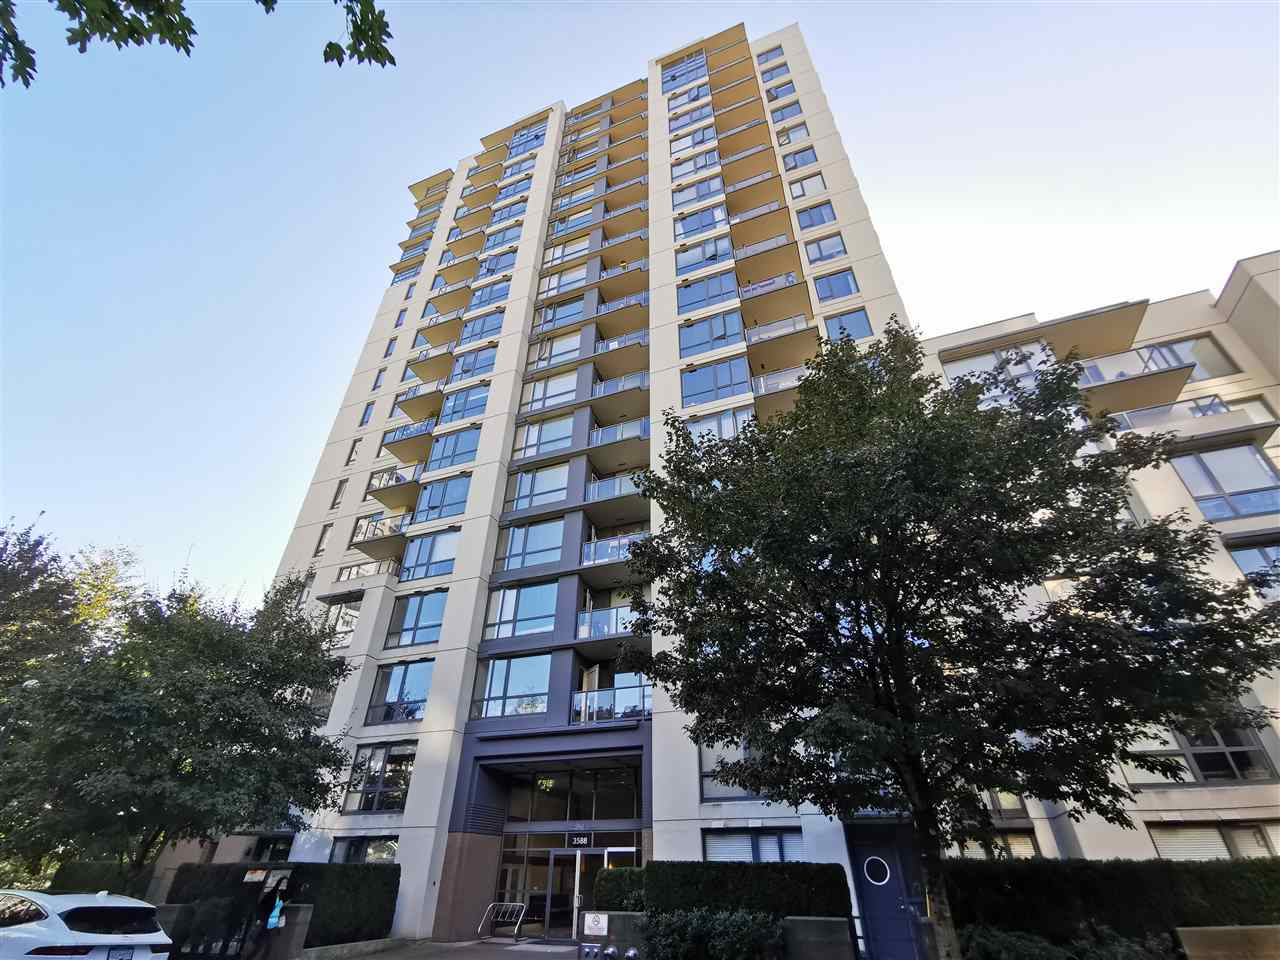 1003 3588 CROWLEY DRIVE - Collingwood VE Apartment/Condo for sale, 1 Bedroom (R2511760) - #1